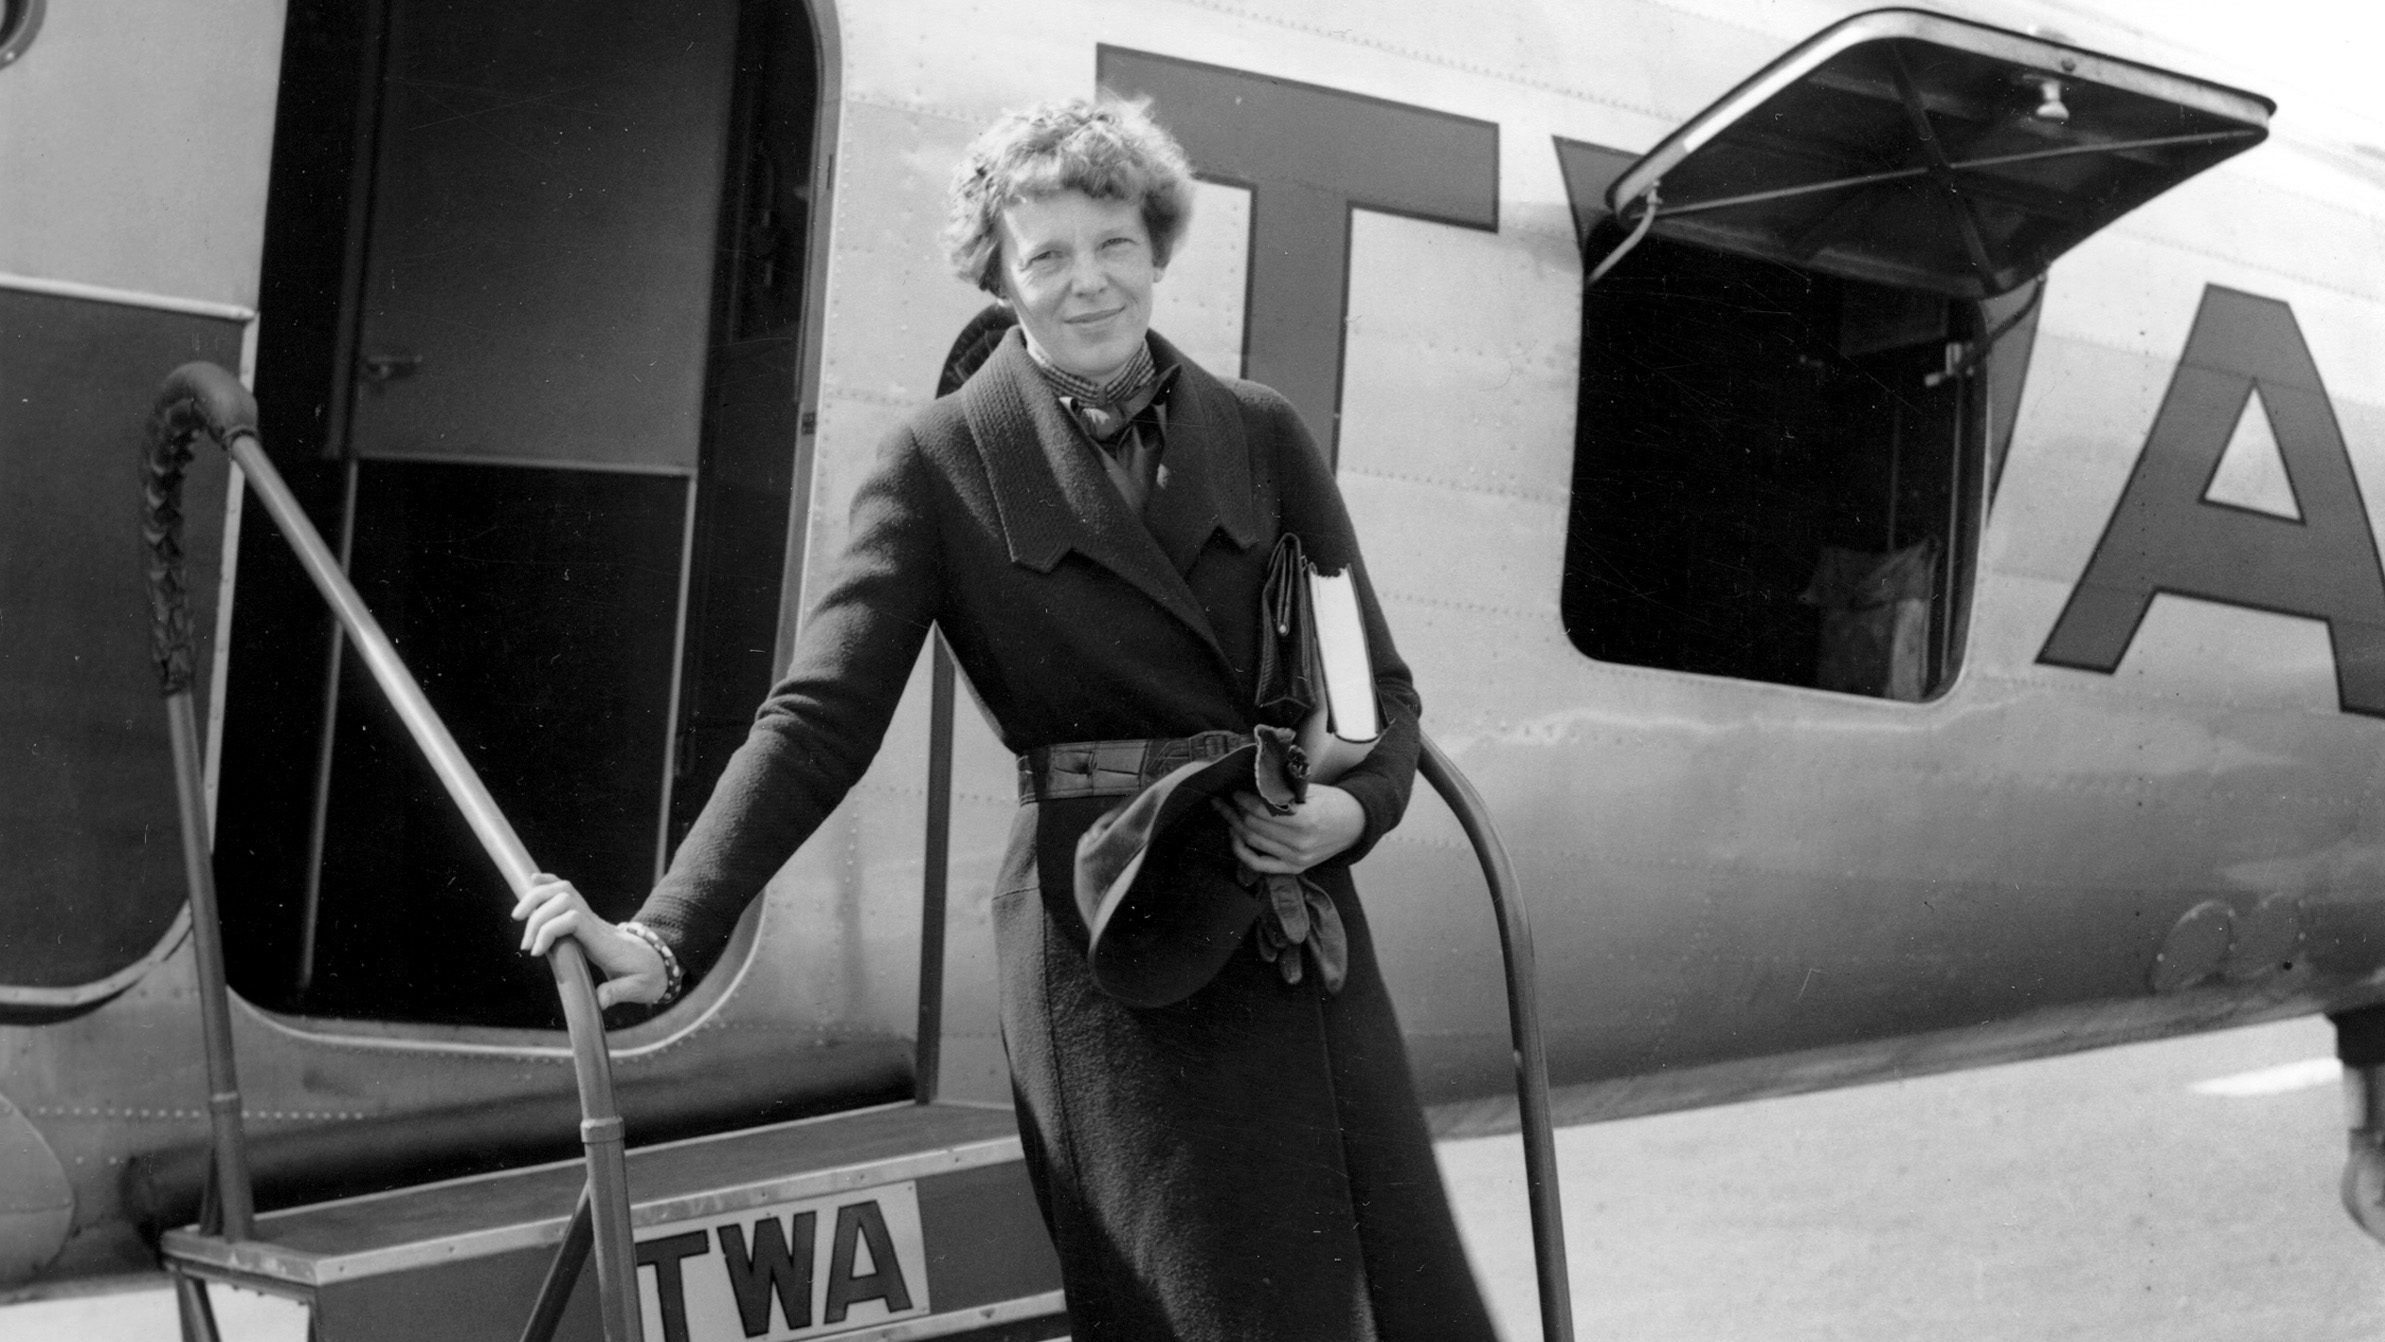 American aviatrix Amelia Earhart poses before boarding a TWA airplane at Newark Airport, N.J., May 22, 1935.  Earhart is en route to Chicago, Ill., to address the Chicago Women's Club.  (AP Photo)